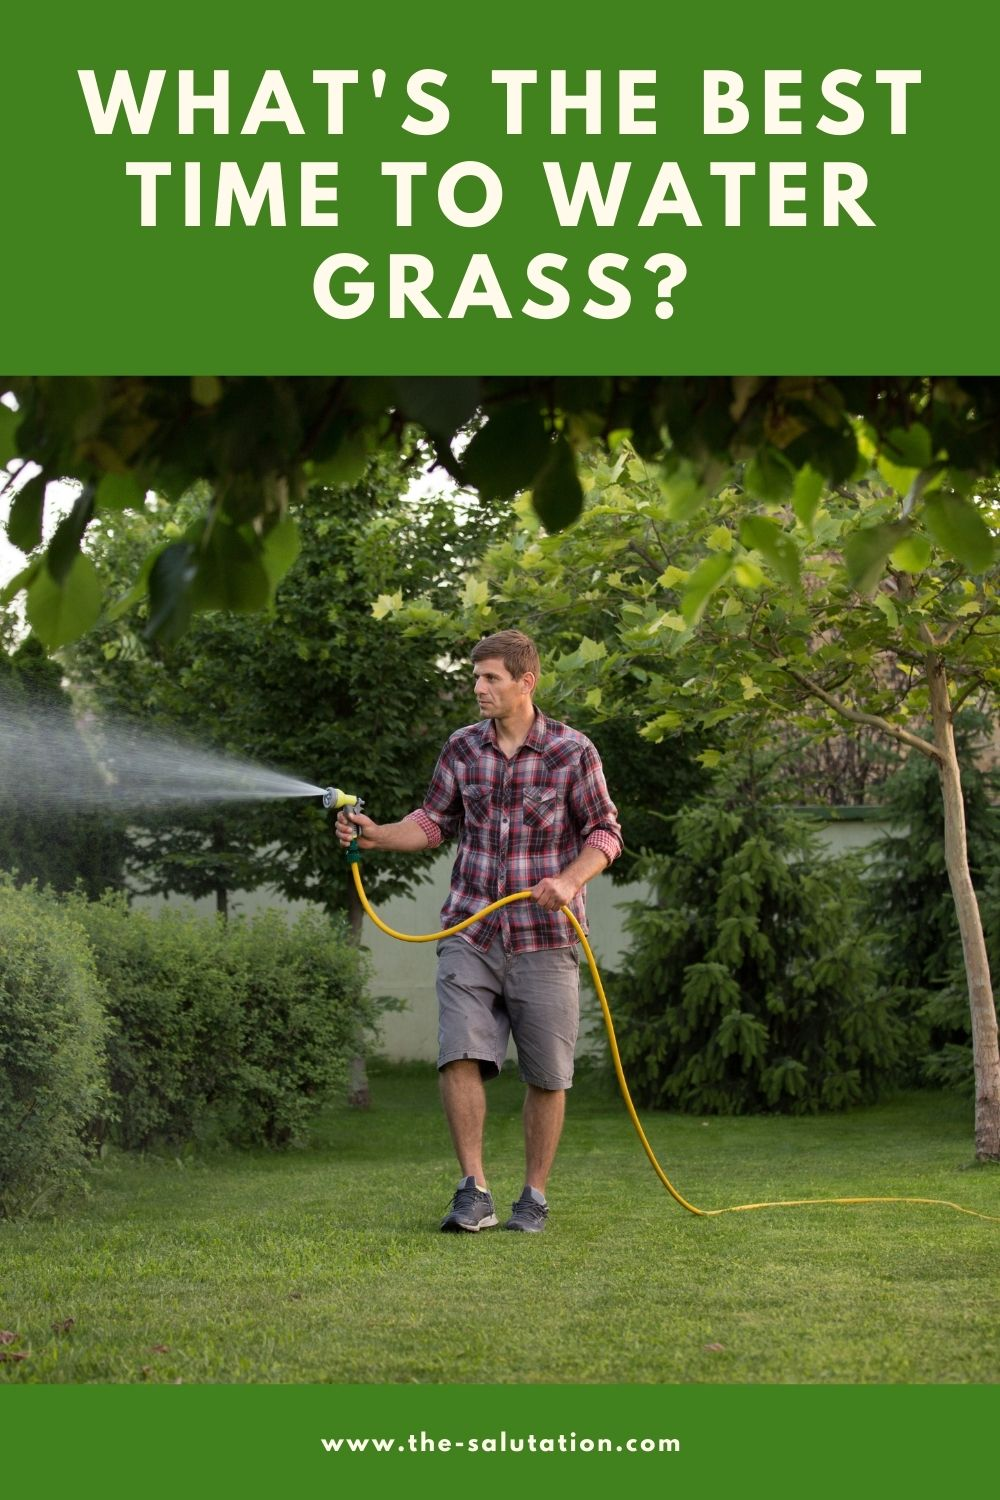 What's the Best Time to Water Grass 2